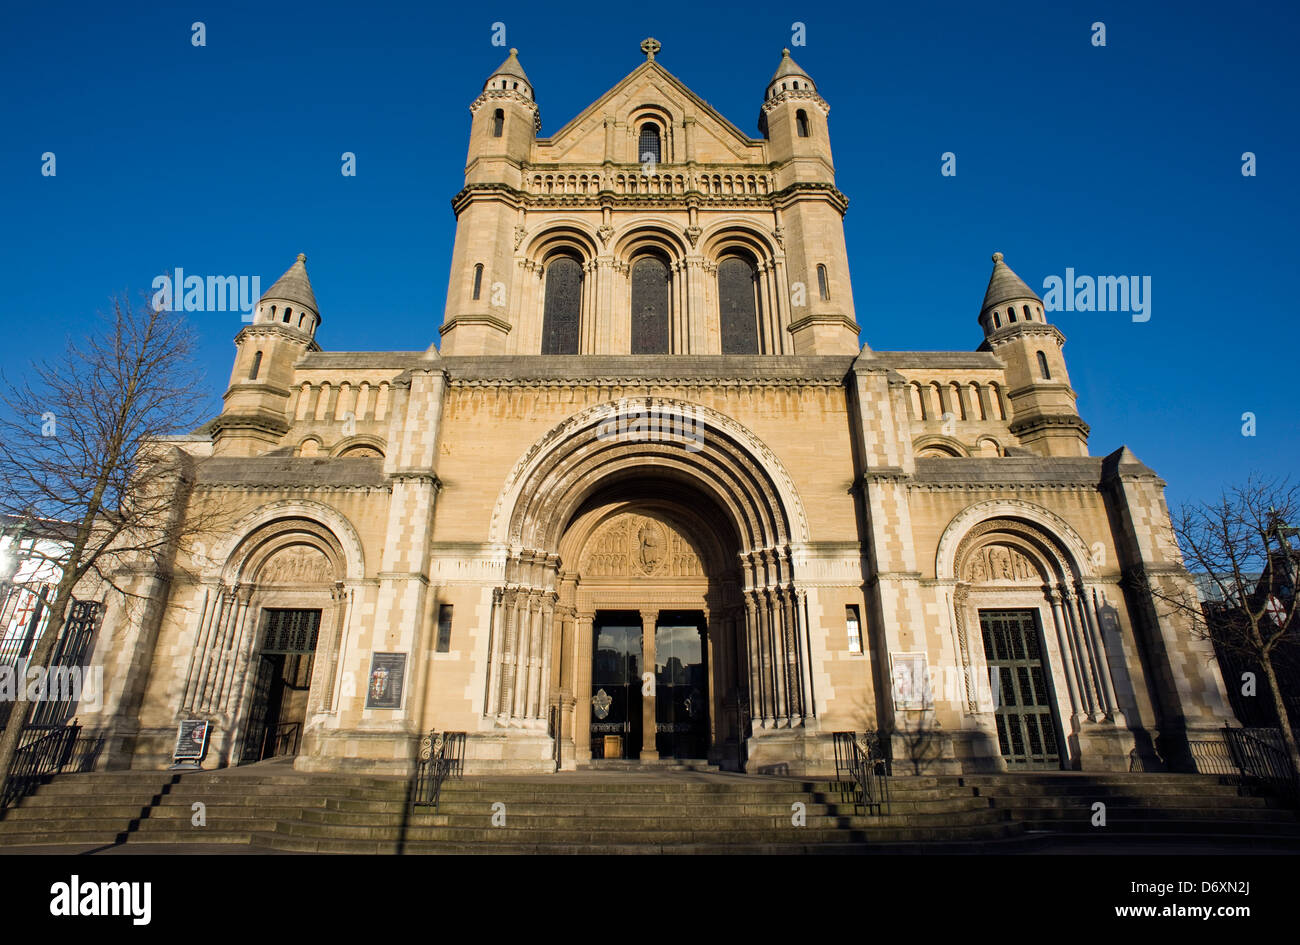 Frontage of Saint Anne's Cathedral, Donegall Street, Belfast - Stock Image